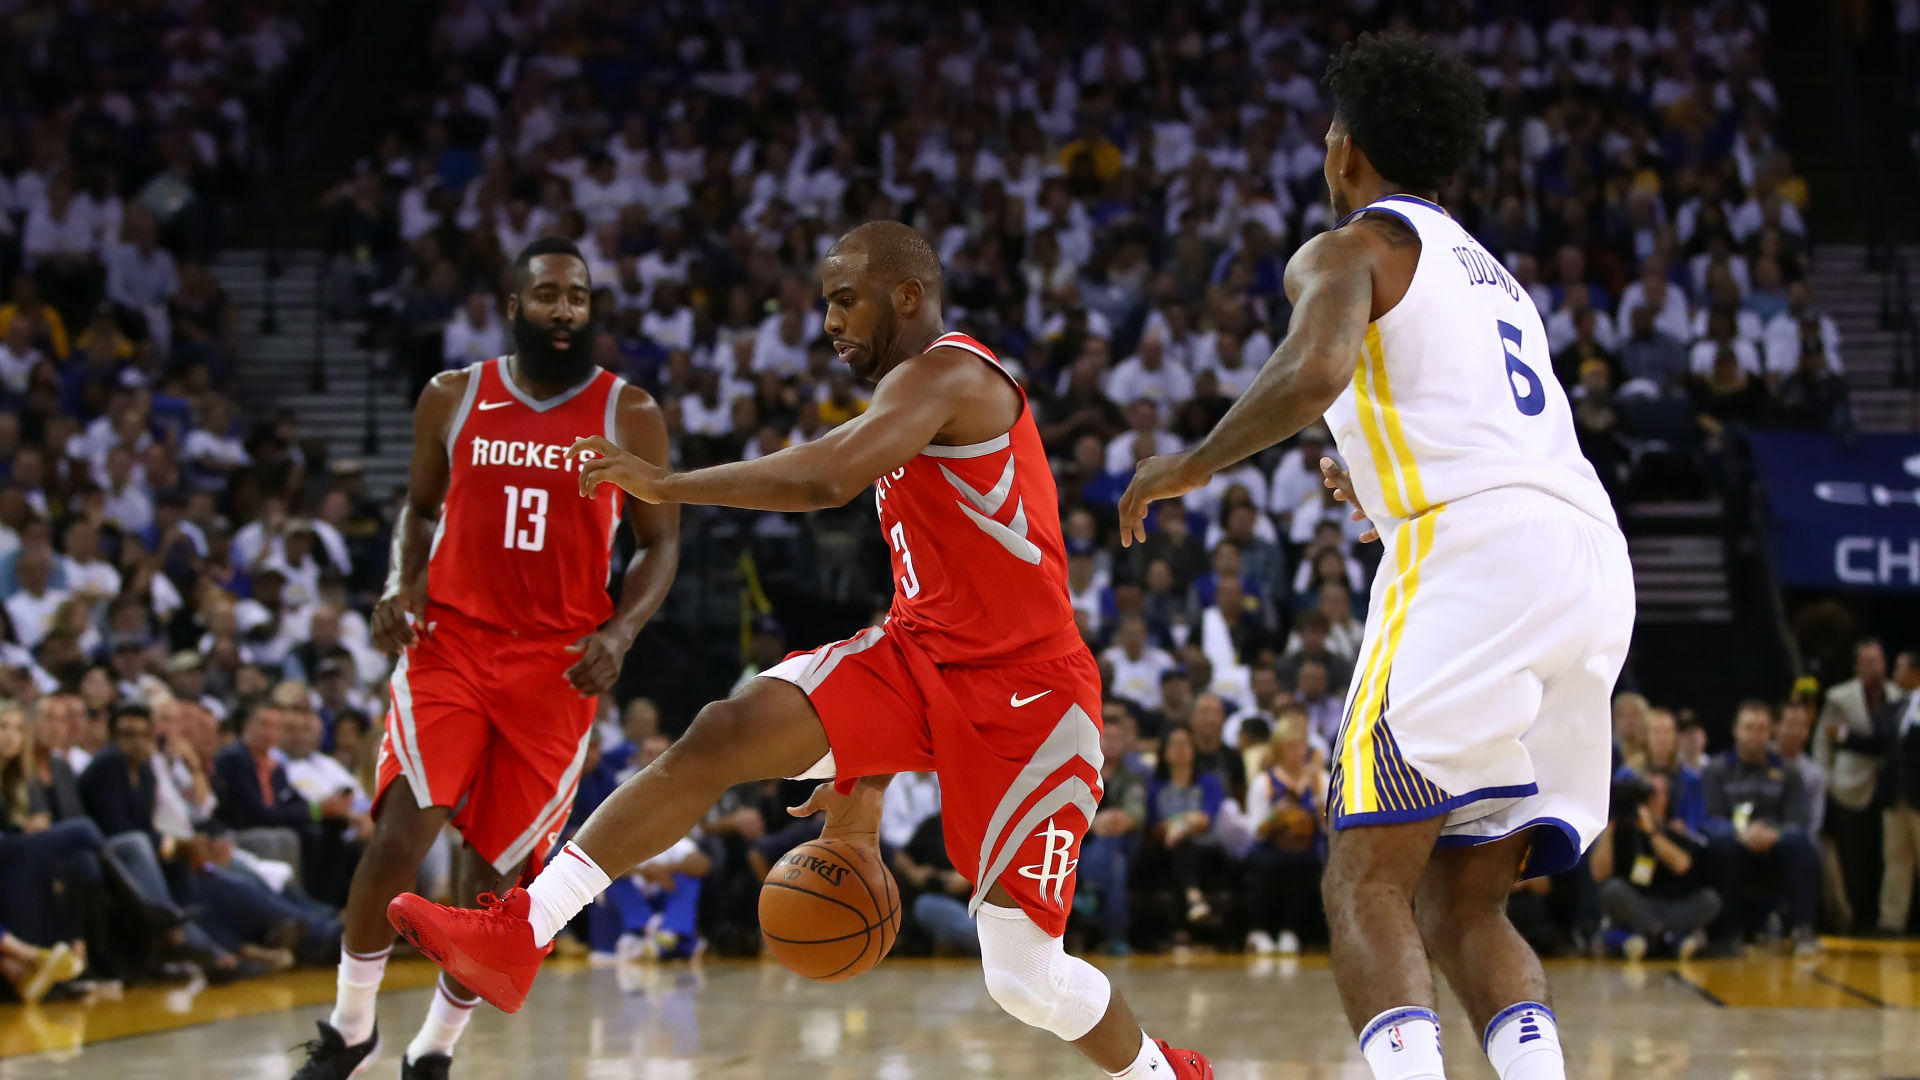 Steve Kerr likes Warriors' chances, rebuffs talk of Rockets having edge